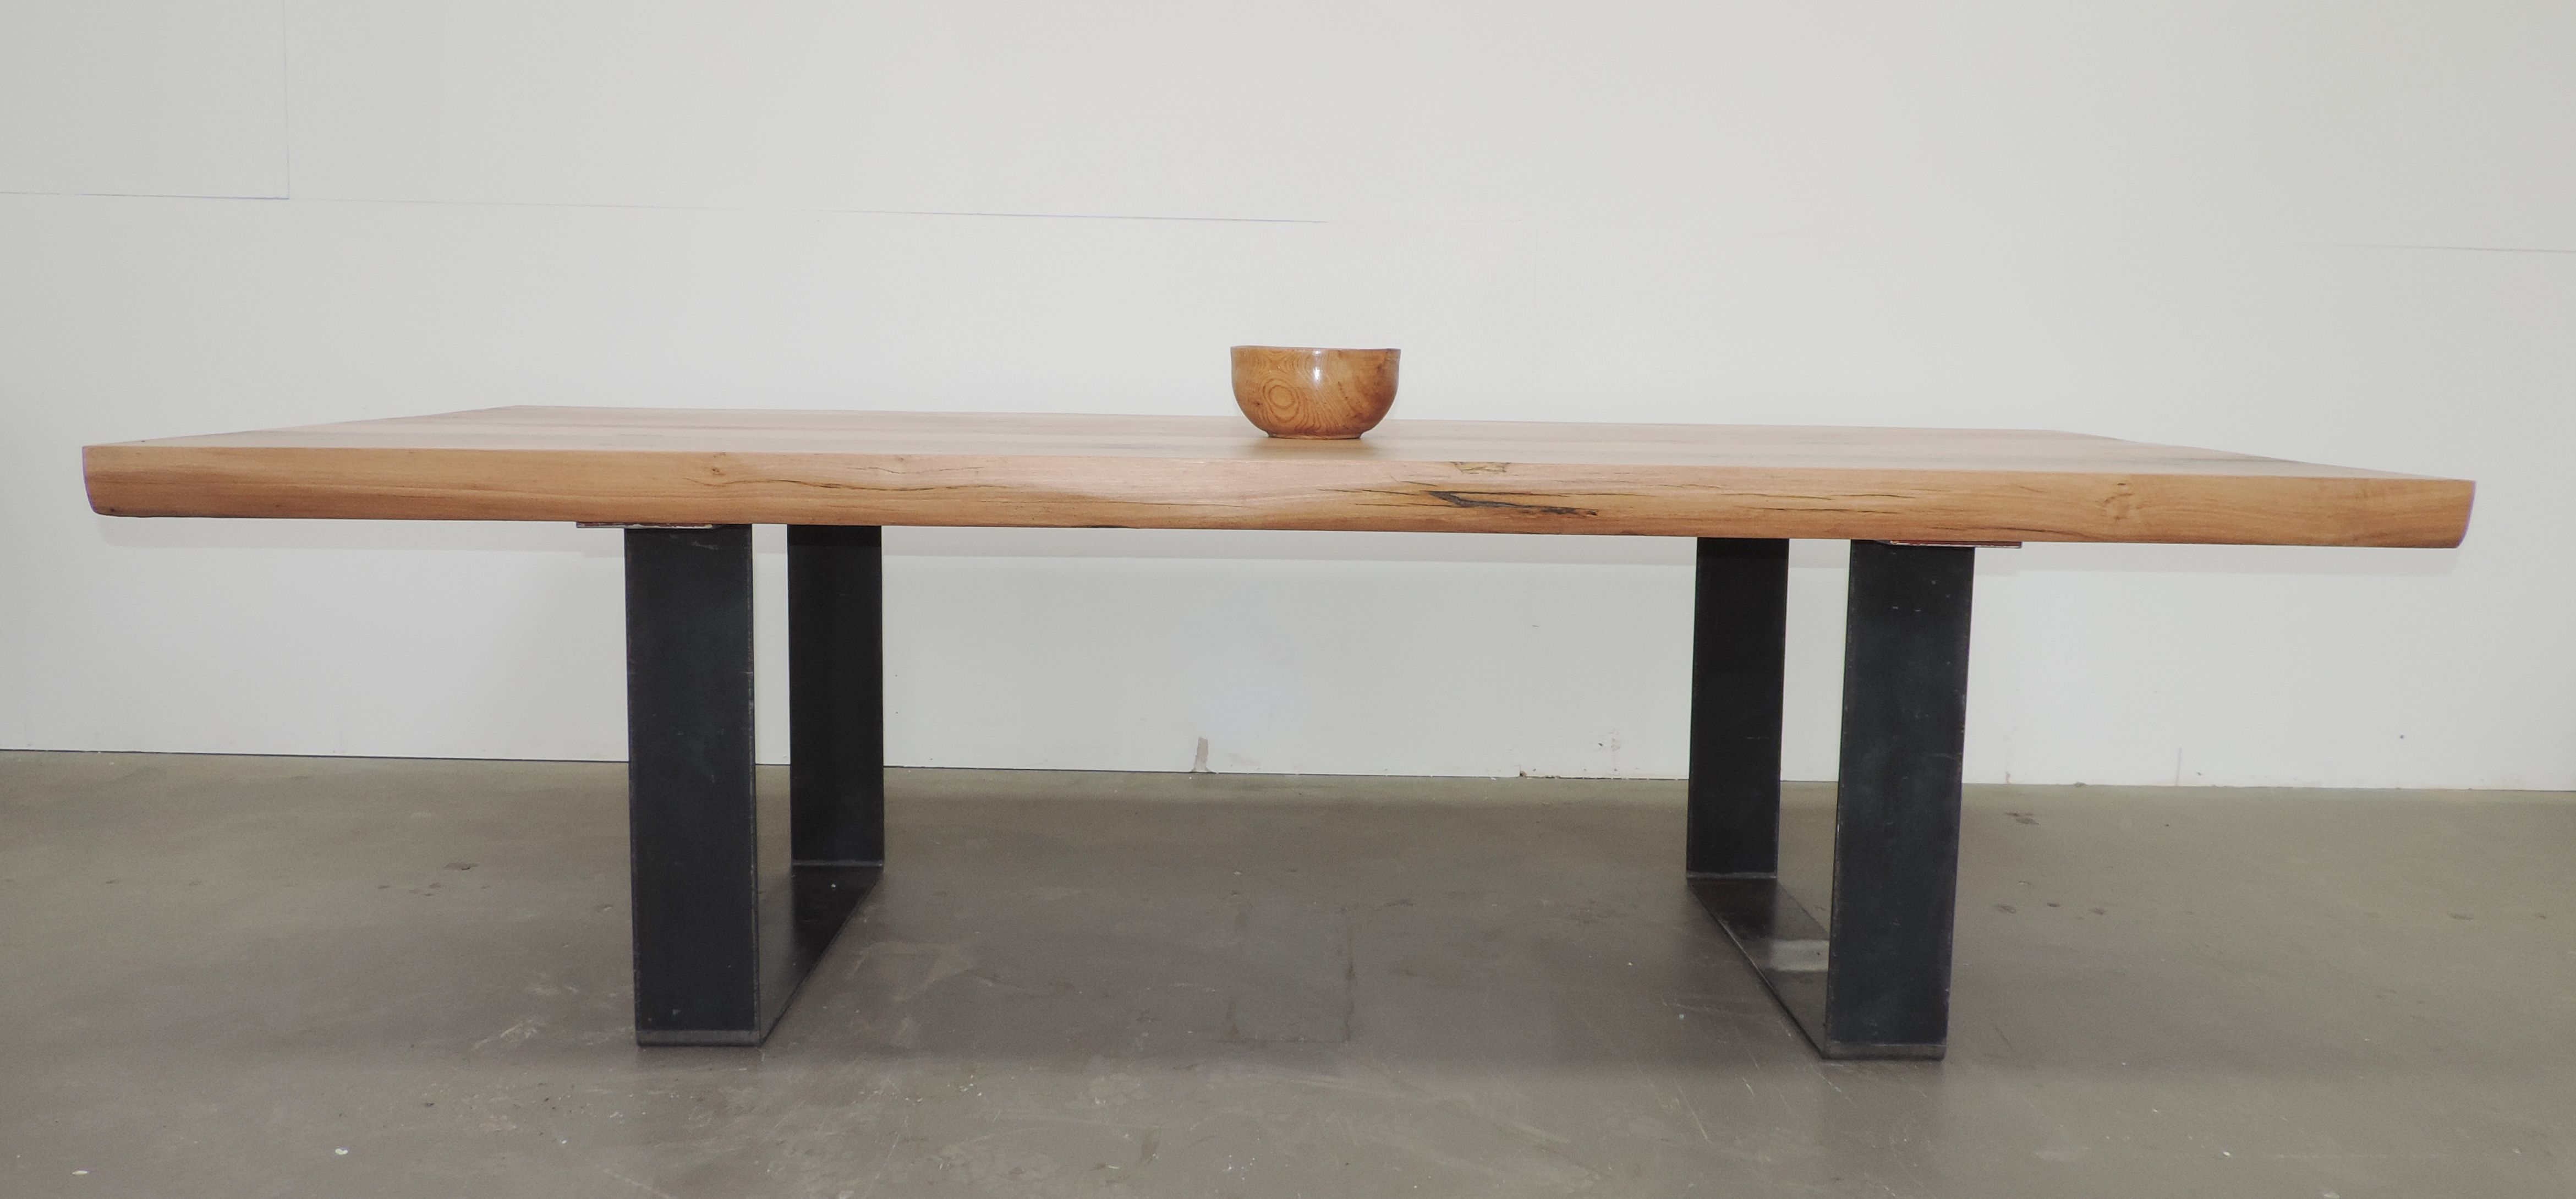 Recycled Bridge Timber Dining Table